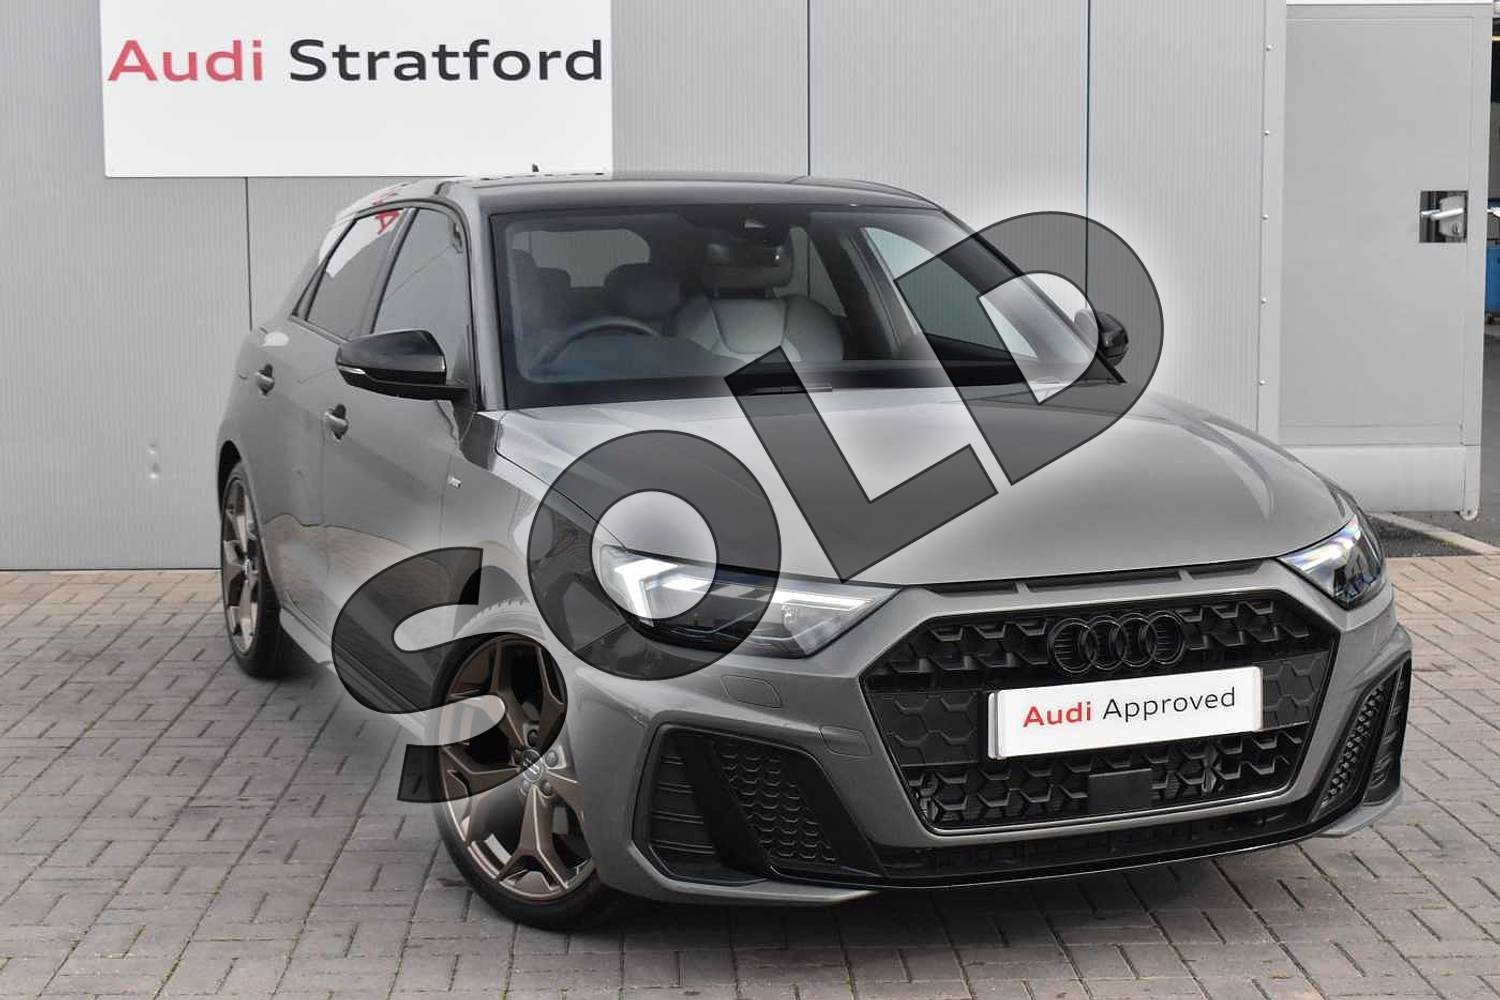 2020 Audi A1 Sportback Special Editions 35 TFSI S Line Style Edition 5dr S Tronic in Chronos Grey Metallic at Stratford Audi